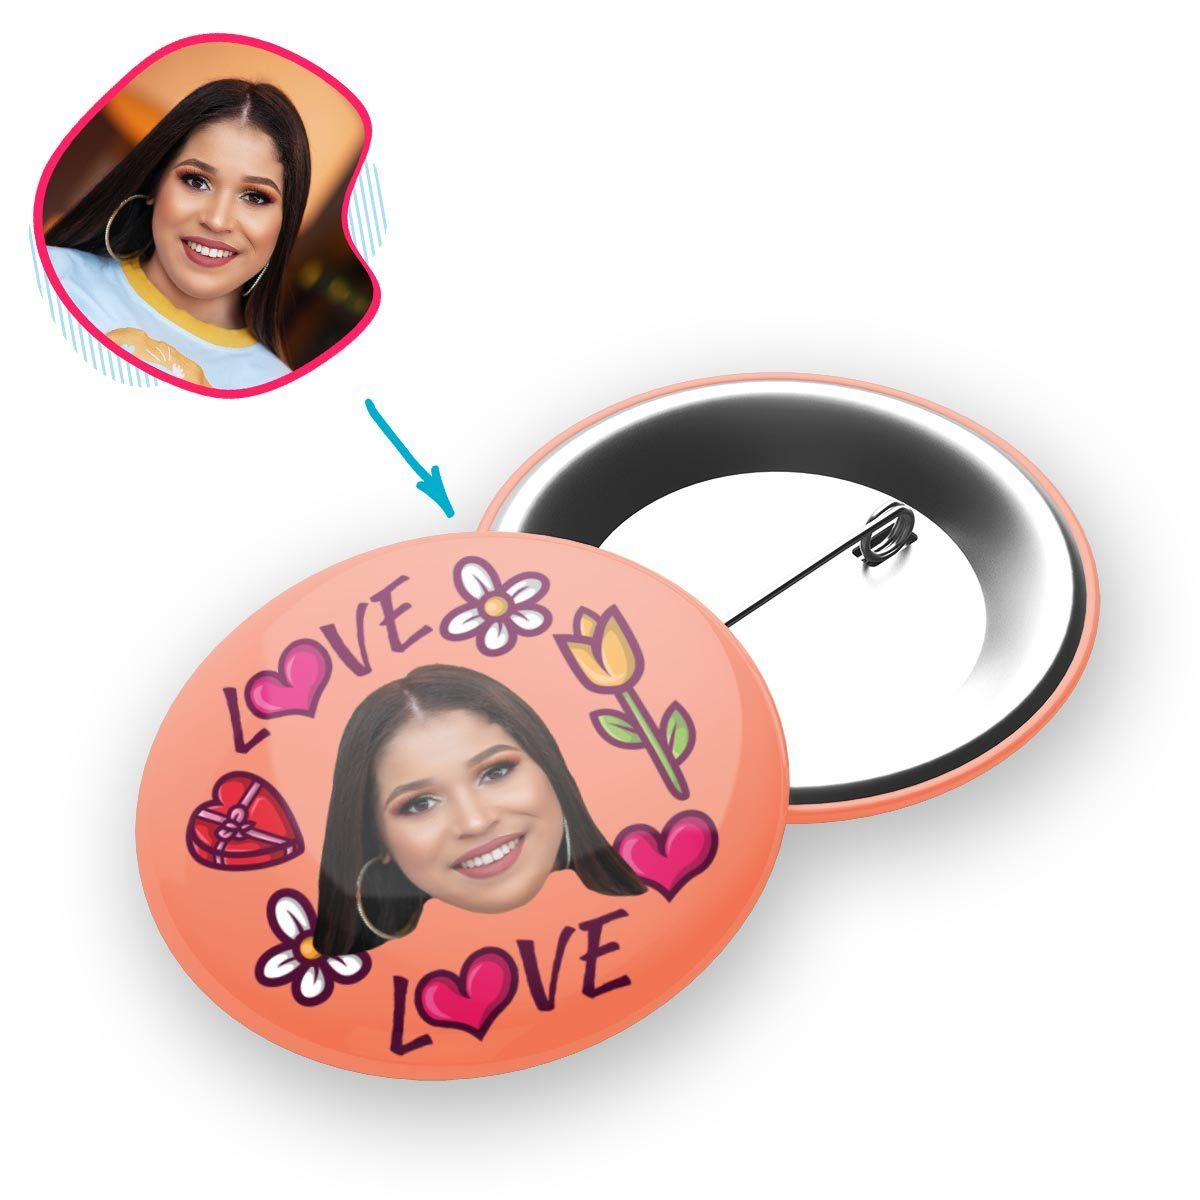 salmon Hearts and Flowers pin personalized with photo of face printed on it